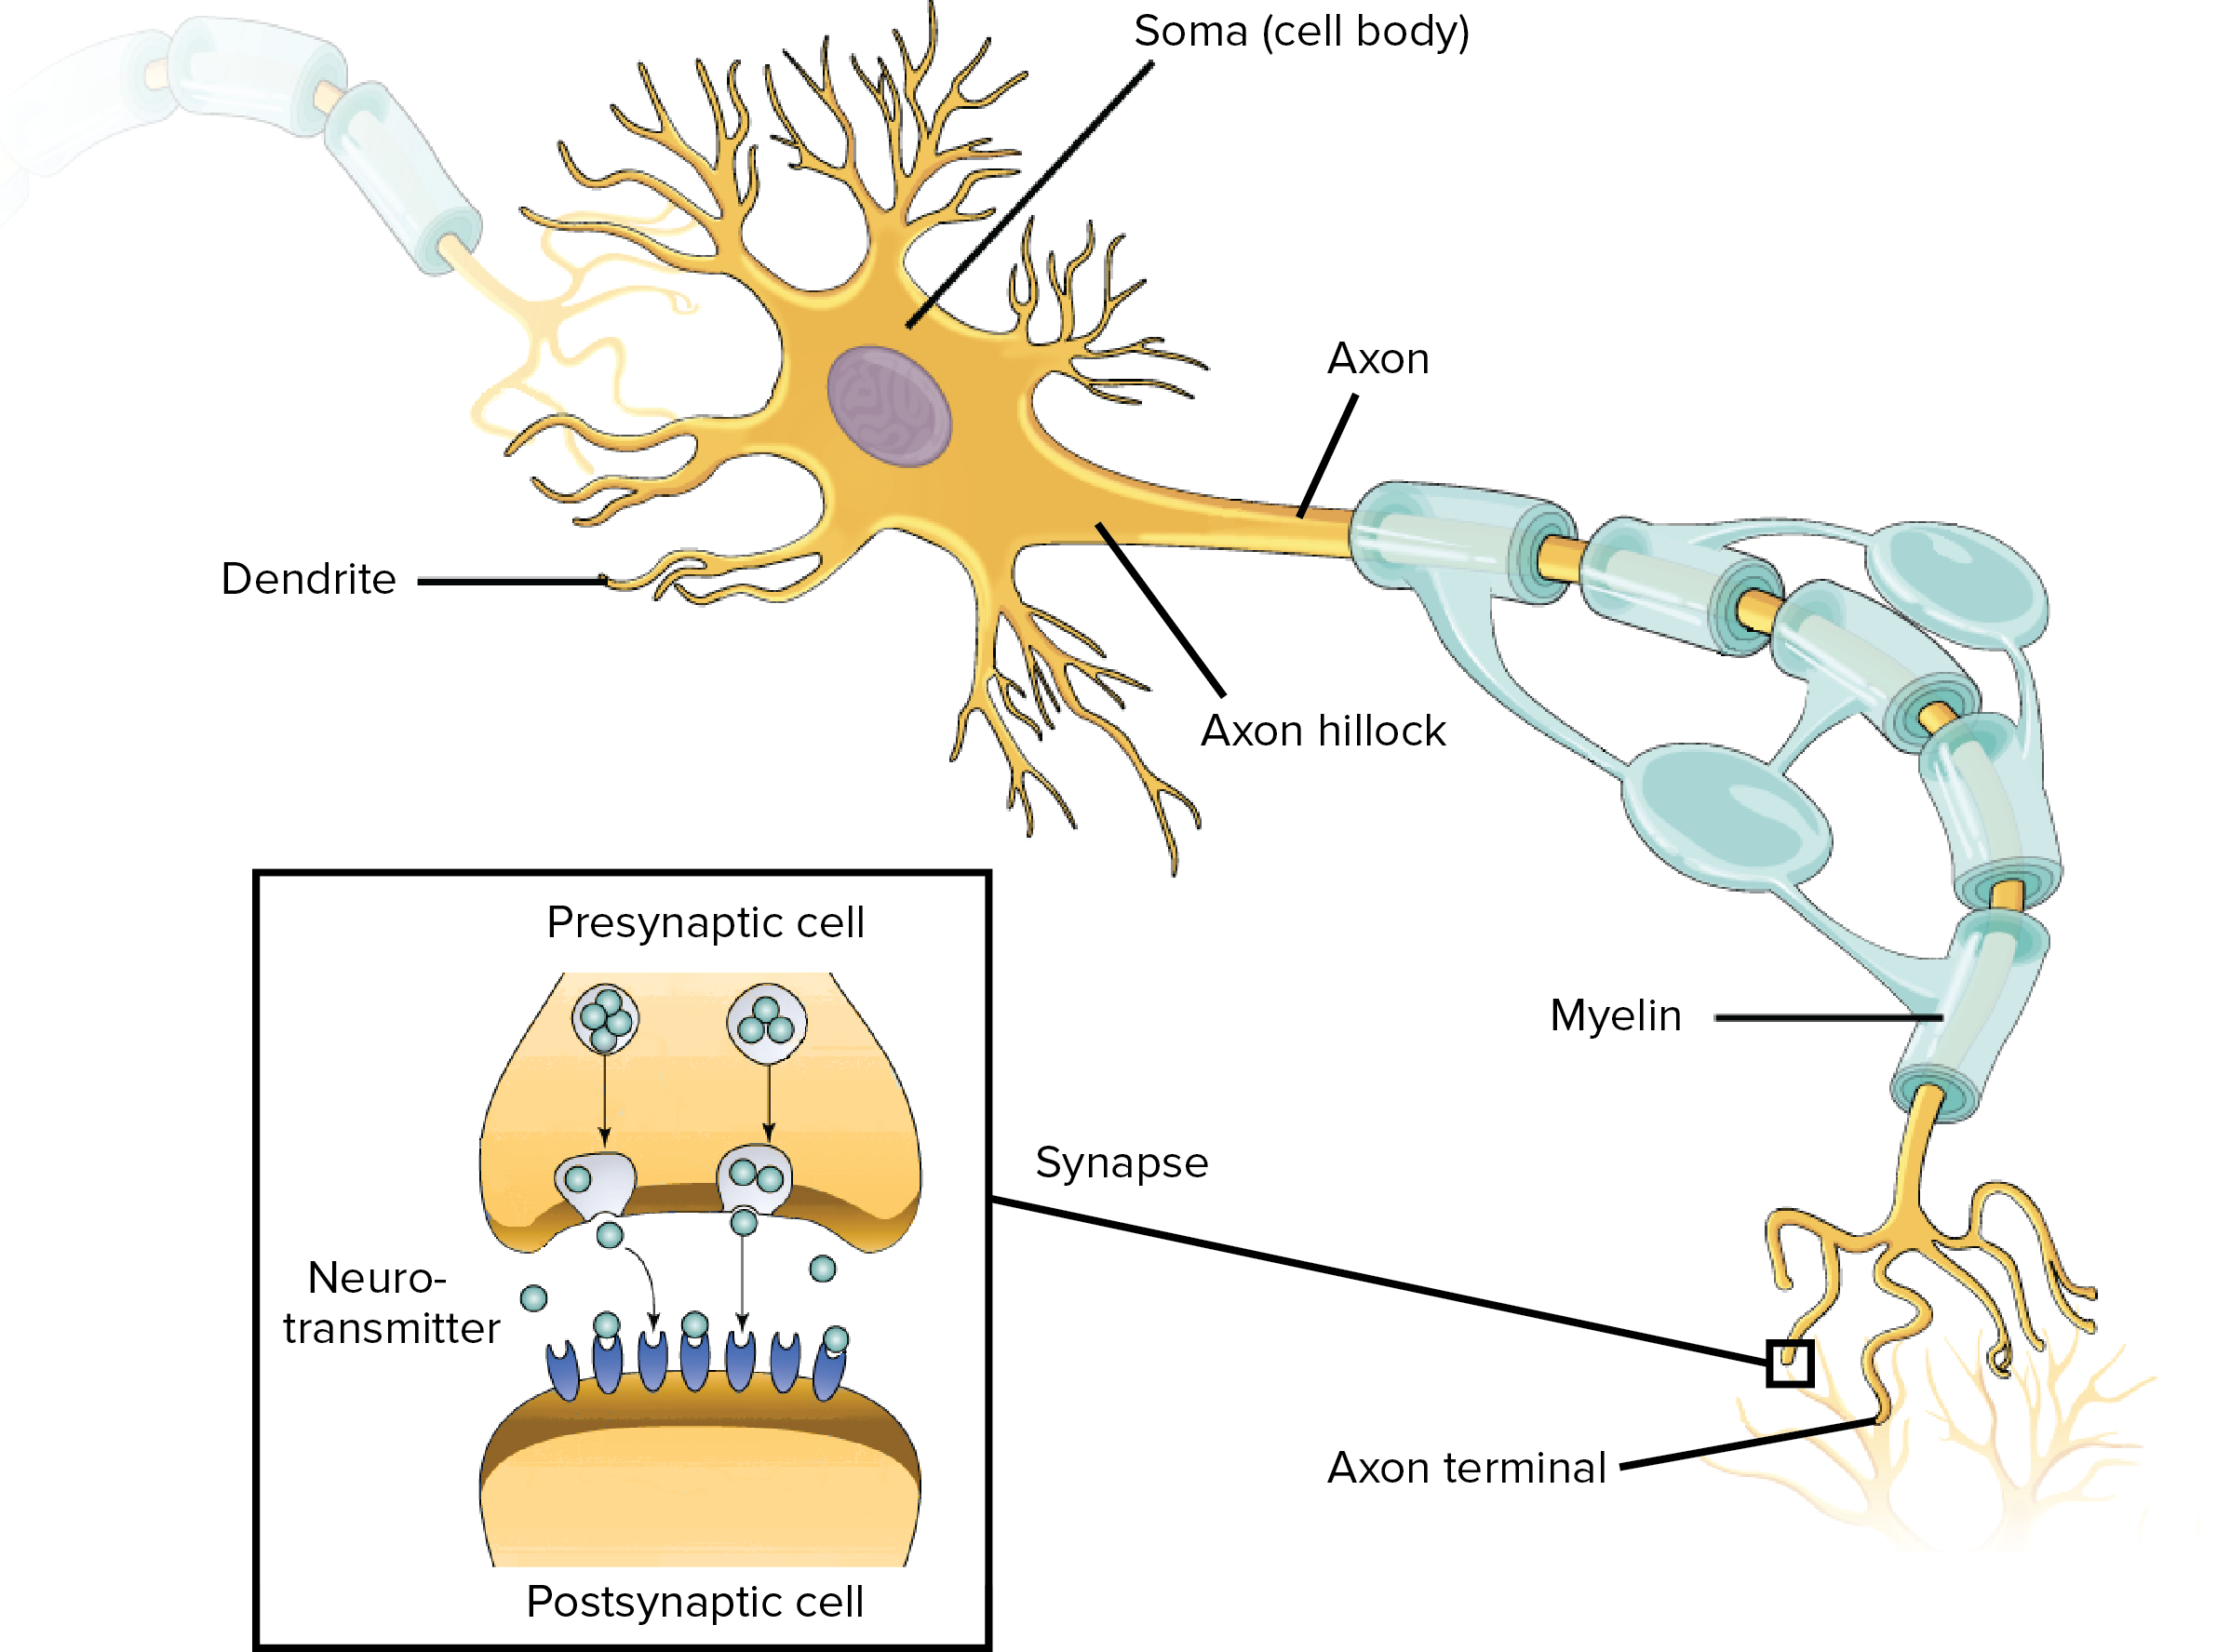 composition of myelin sheet The importance of maintaining the myelin sheath acetylcholine is the building block of myelin, which acts to insulate the axon and neuron, thus providing moisture and lubricants to the nervous system.